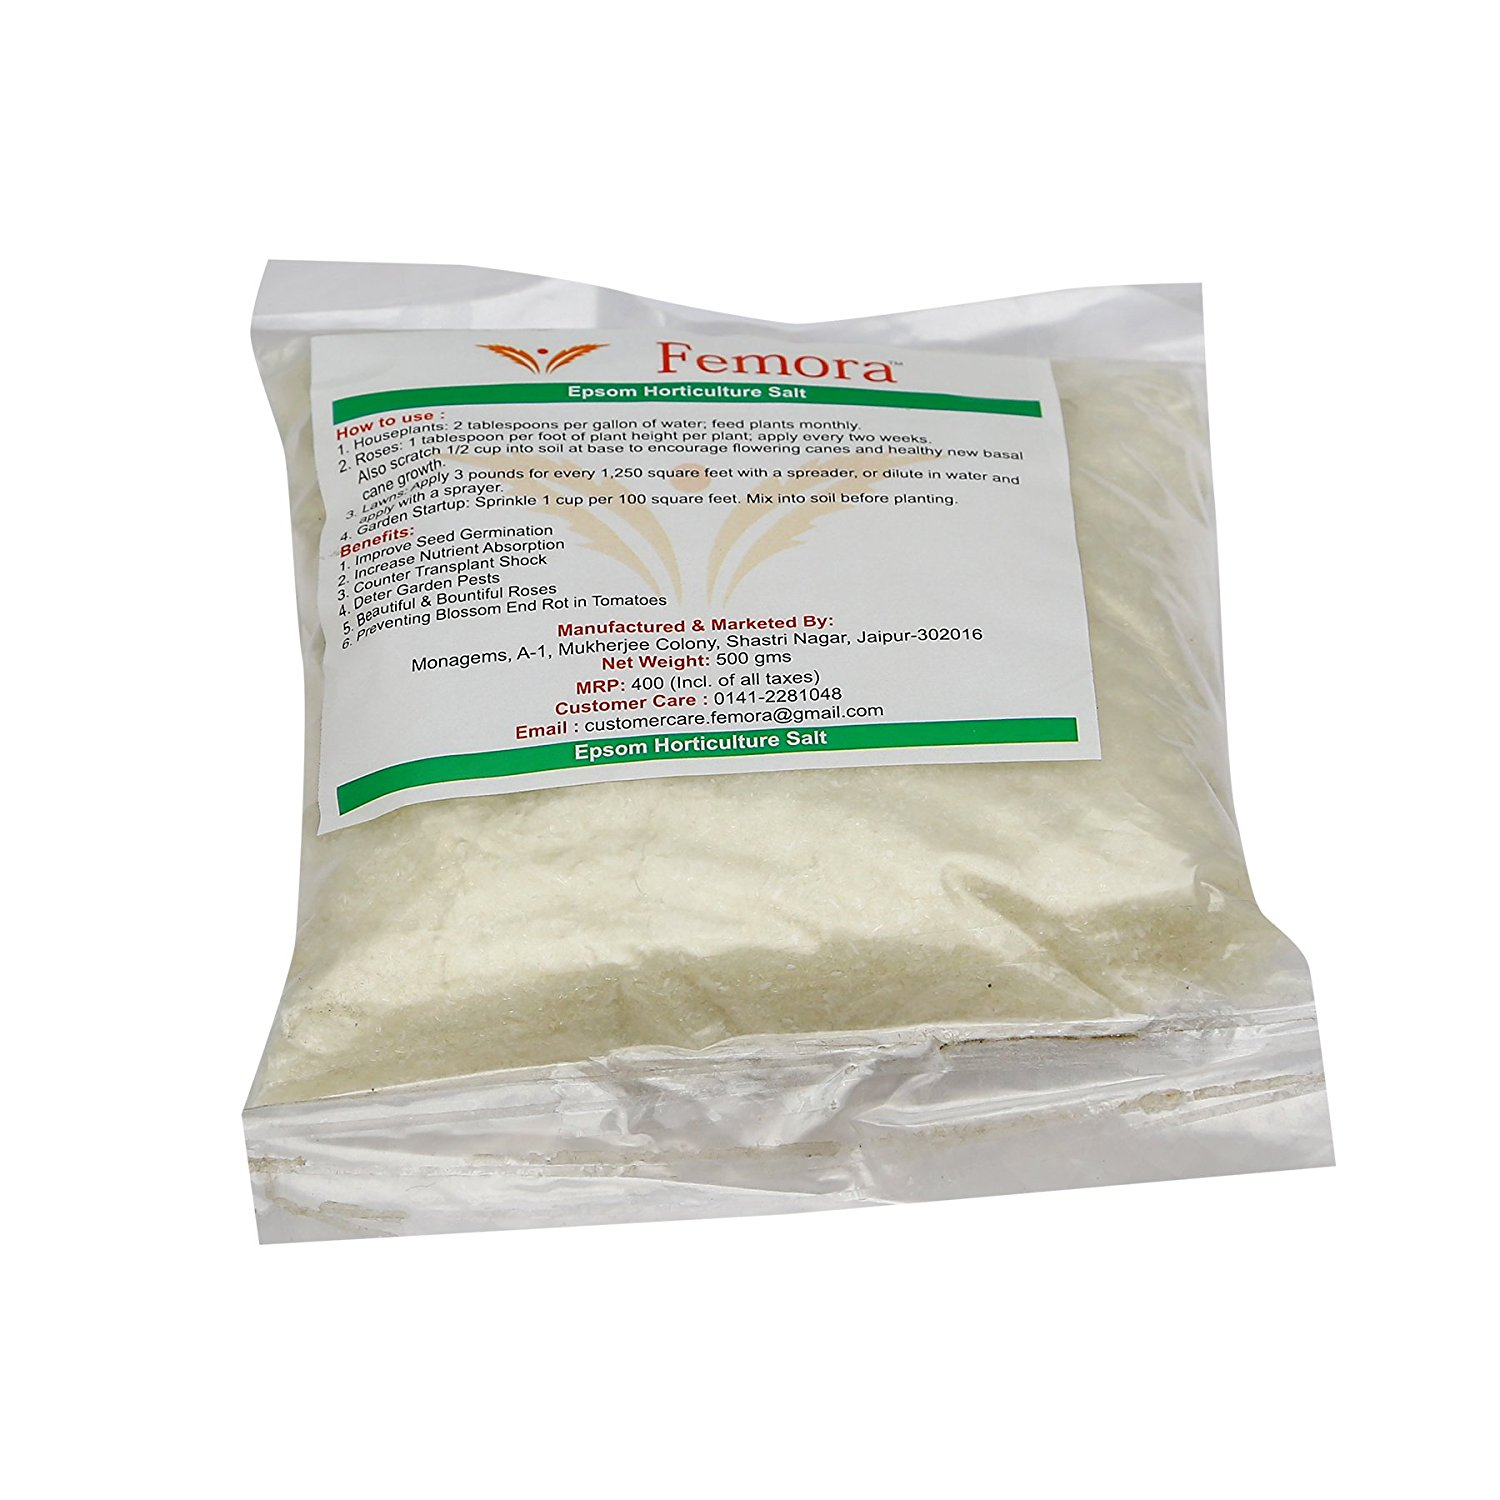 Femora Pure Epsom Salt for Horticultural/Aquarium Purposes - 500 gm